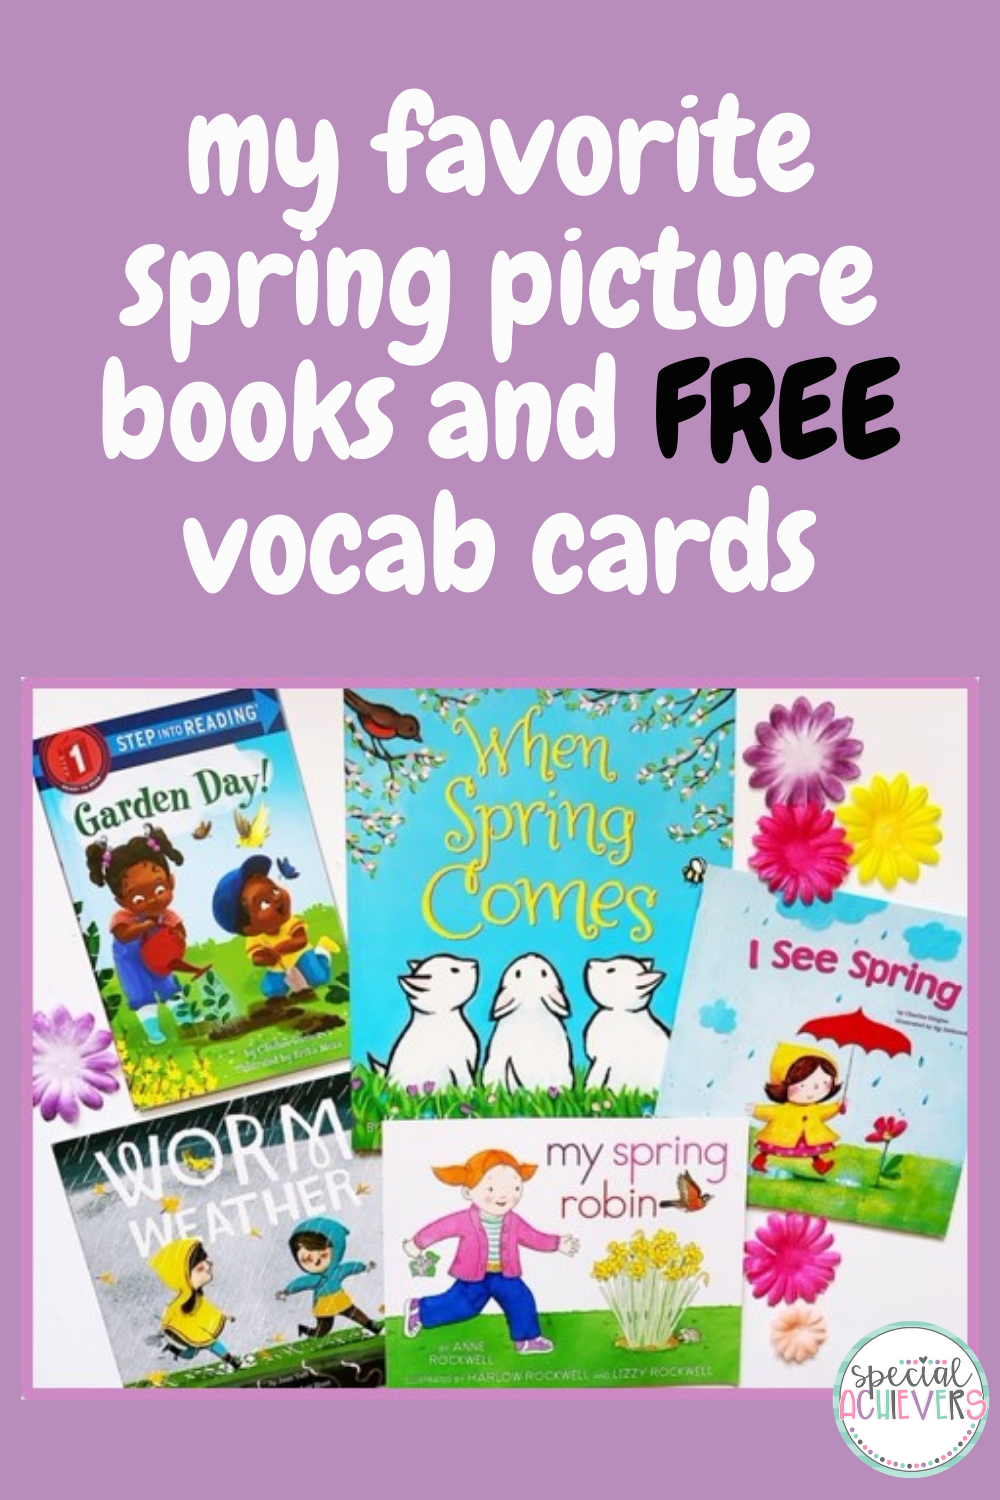 "The covers of the following books are shown: Garden Day, When Spring Comes, I See Spring, Worm Weather, and My Spring Robin with the text ""My Favorite Spring Picture Books and FREE vocab cards."